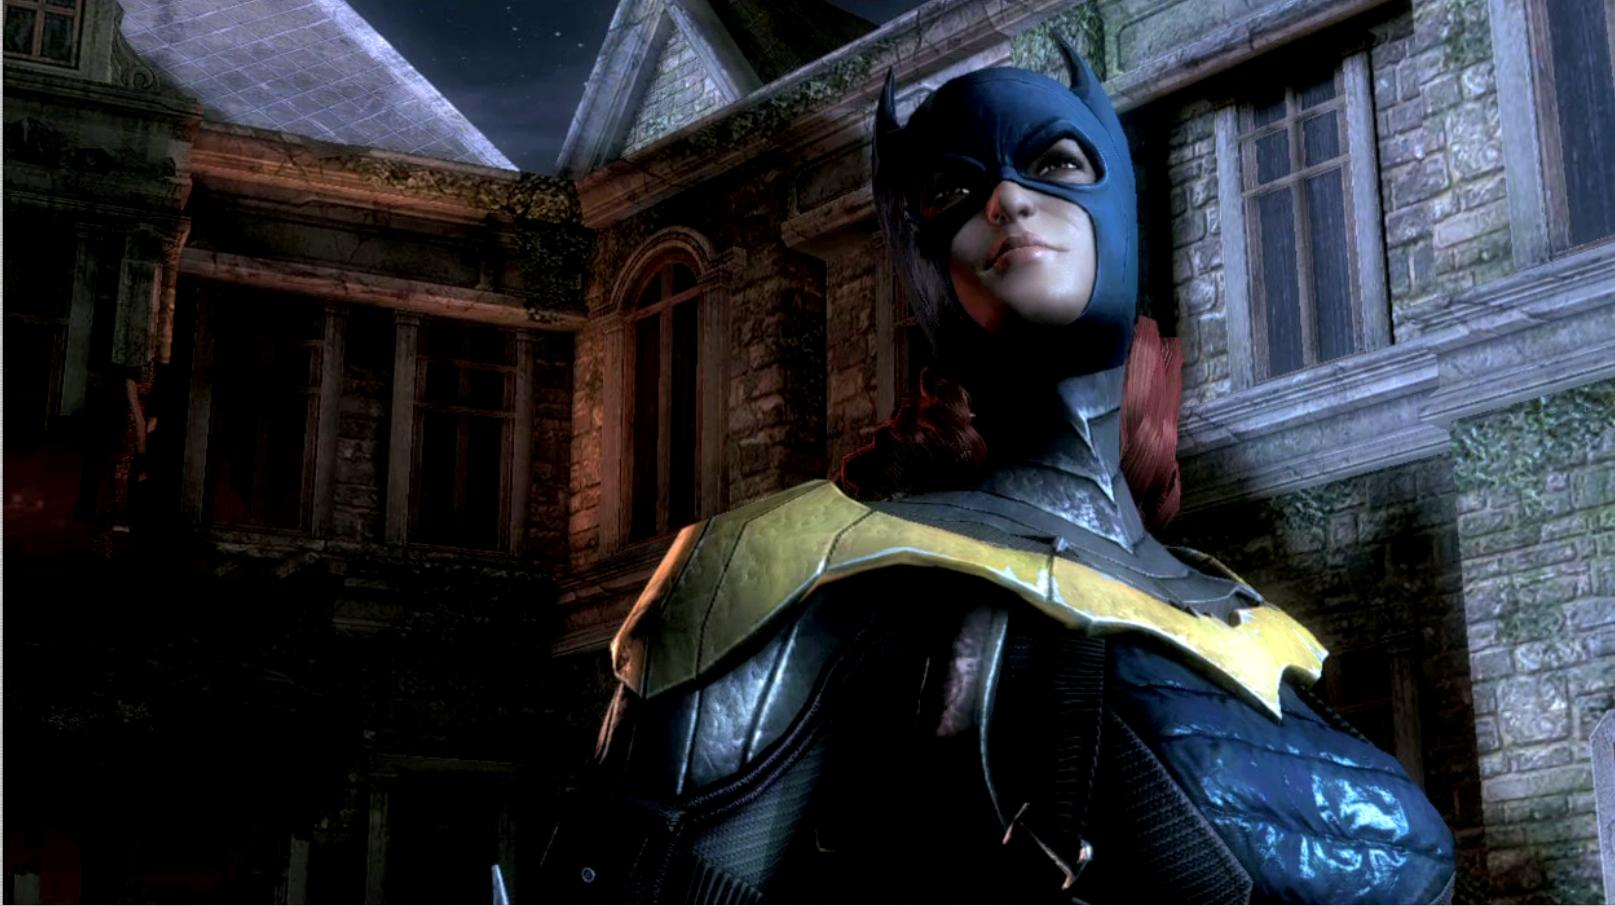 Warner has released a new trailer showcasing the new DLC  Batgirl  for